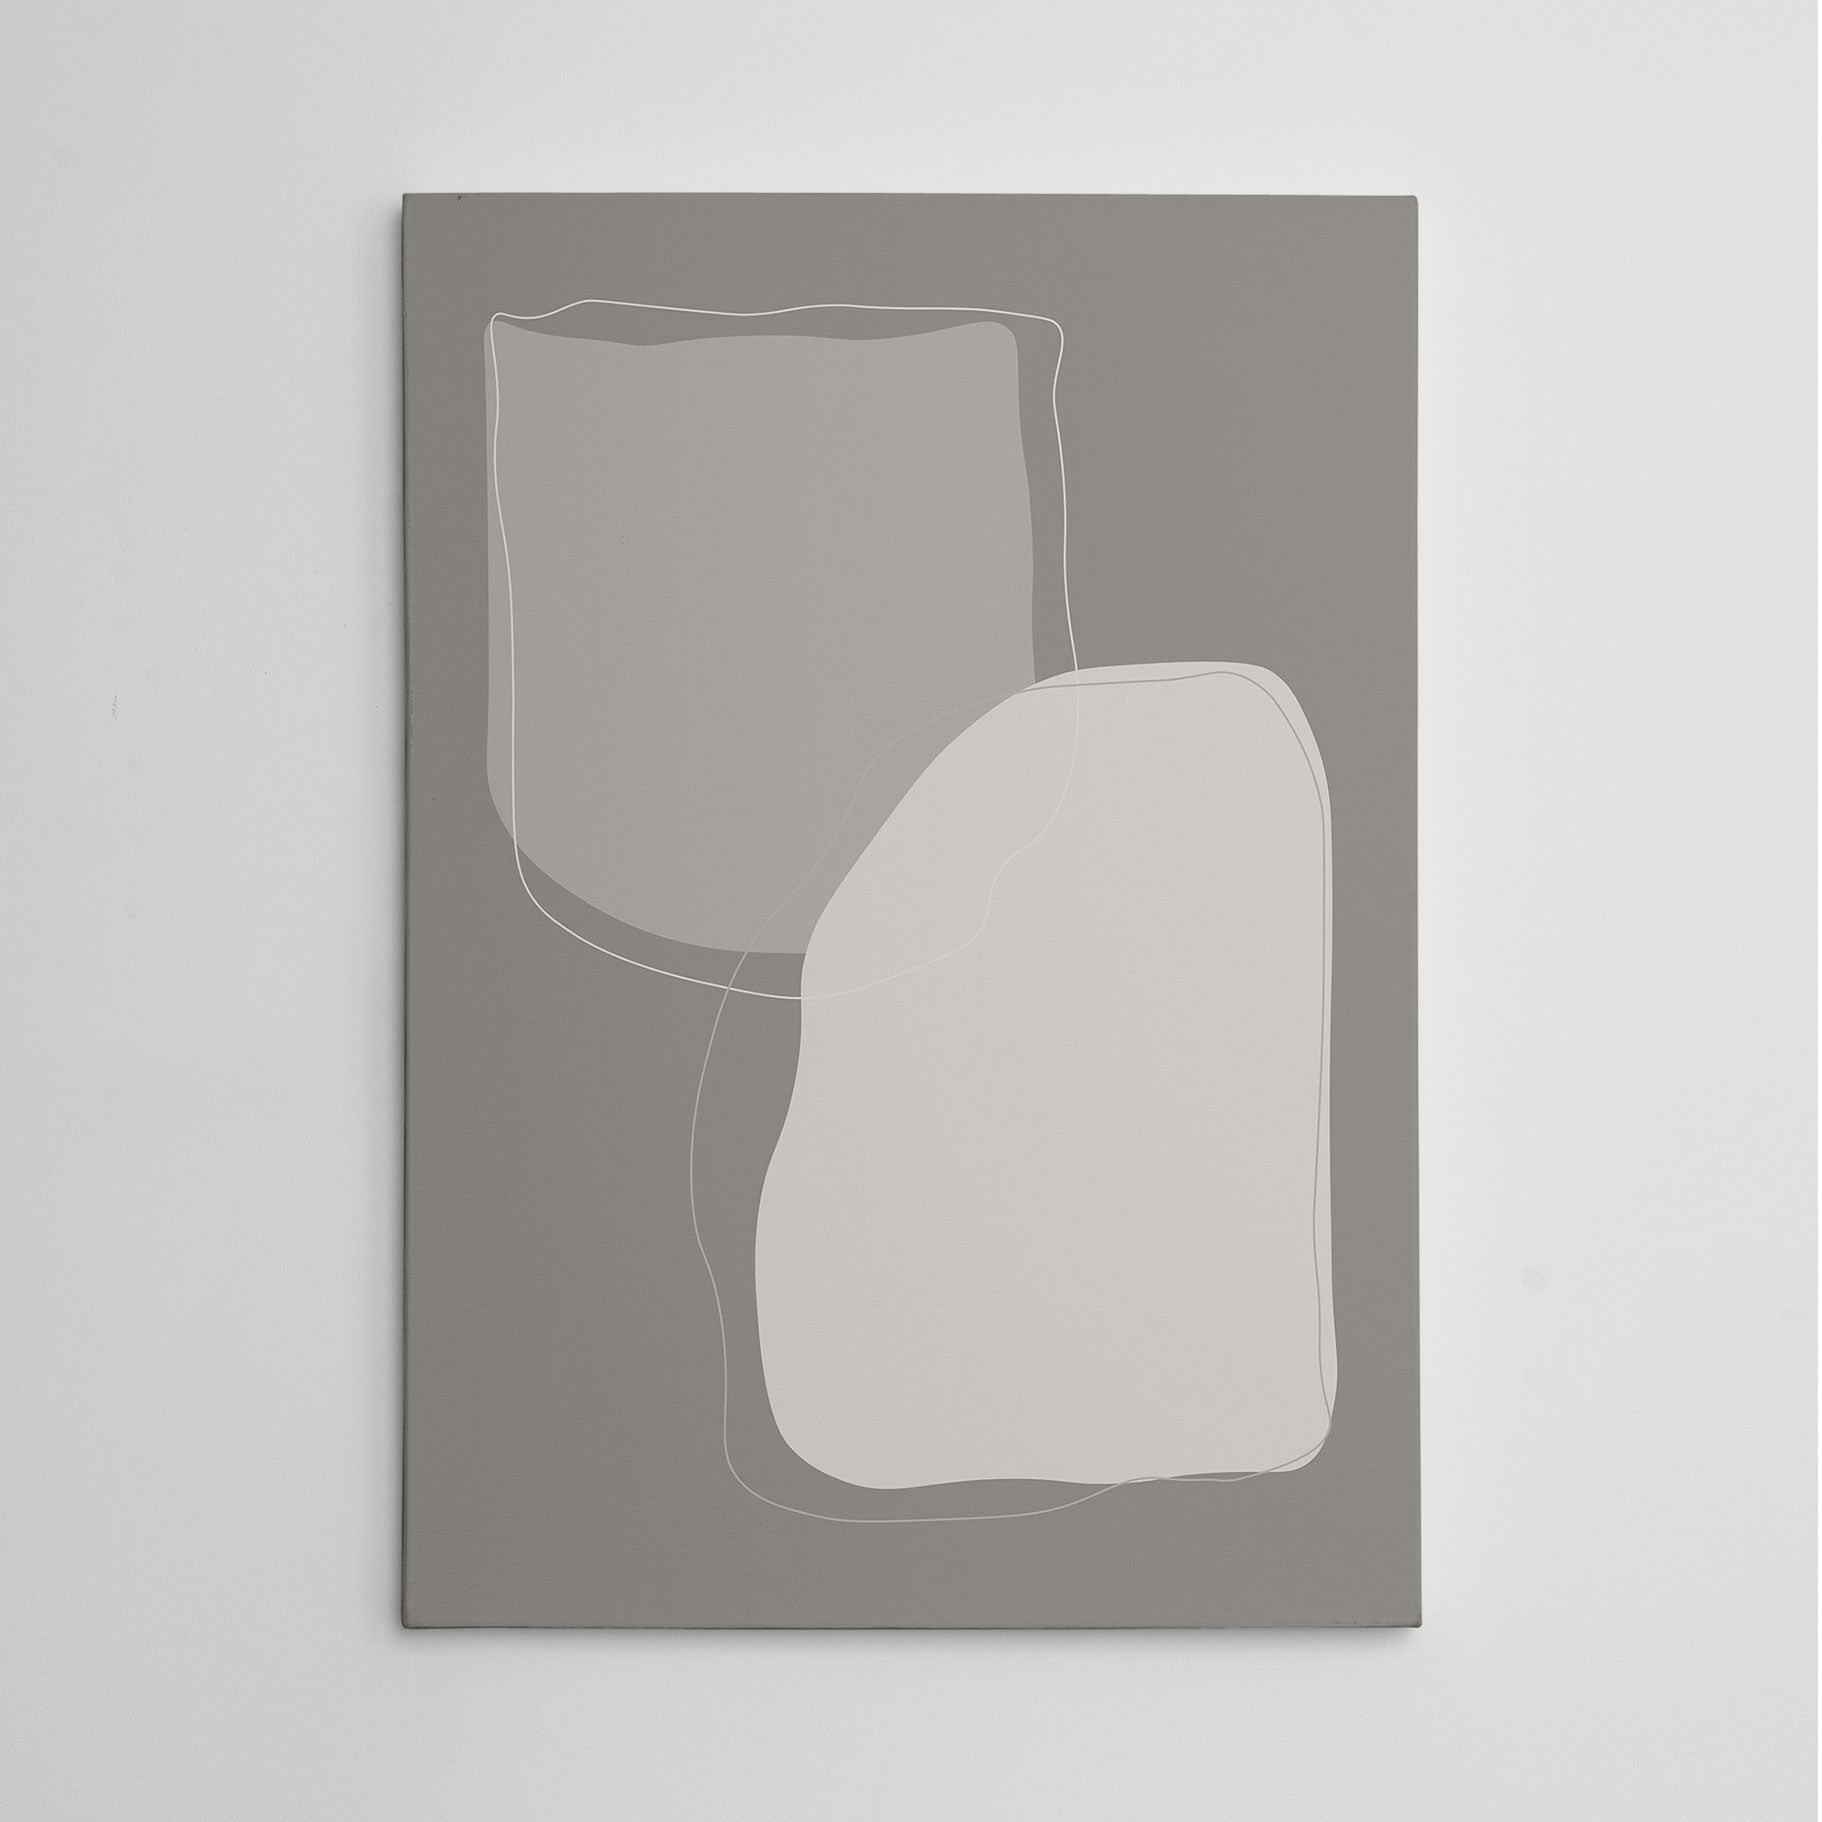 Abstract canvas print with grey shapes and background